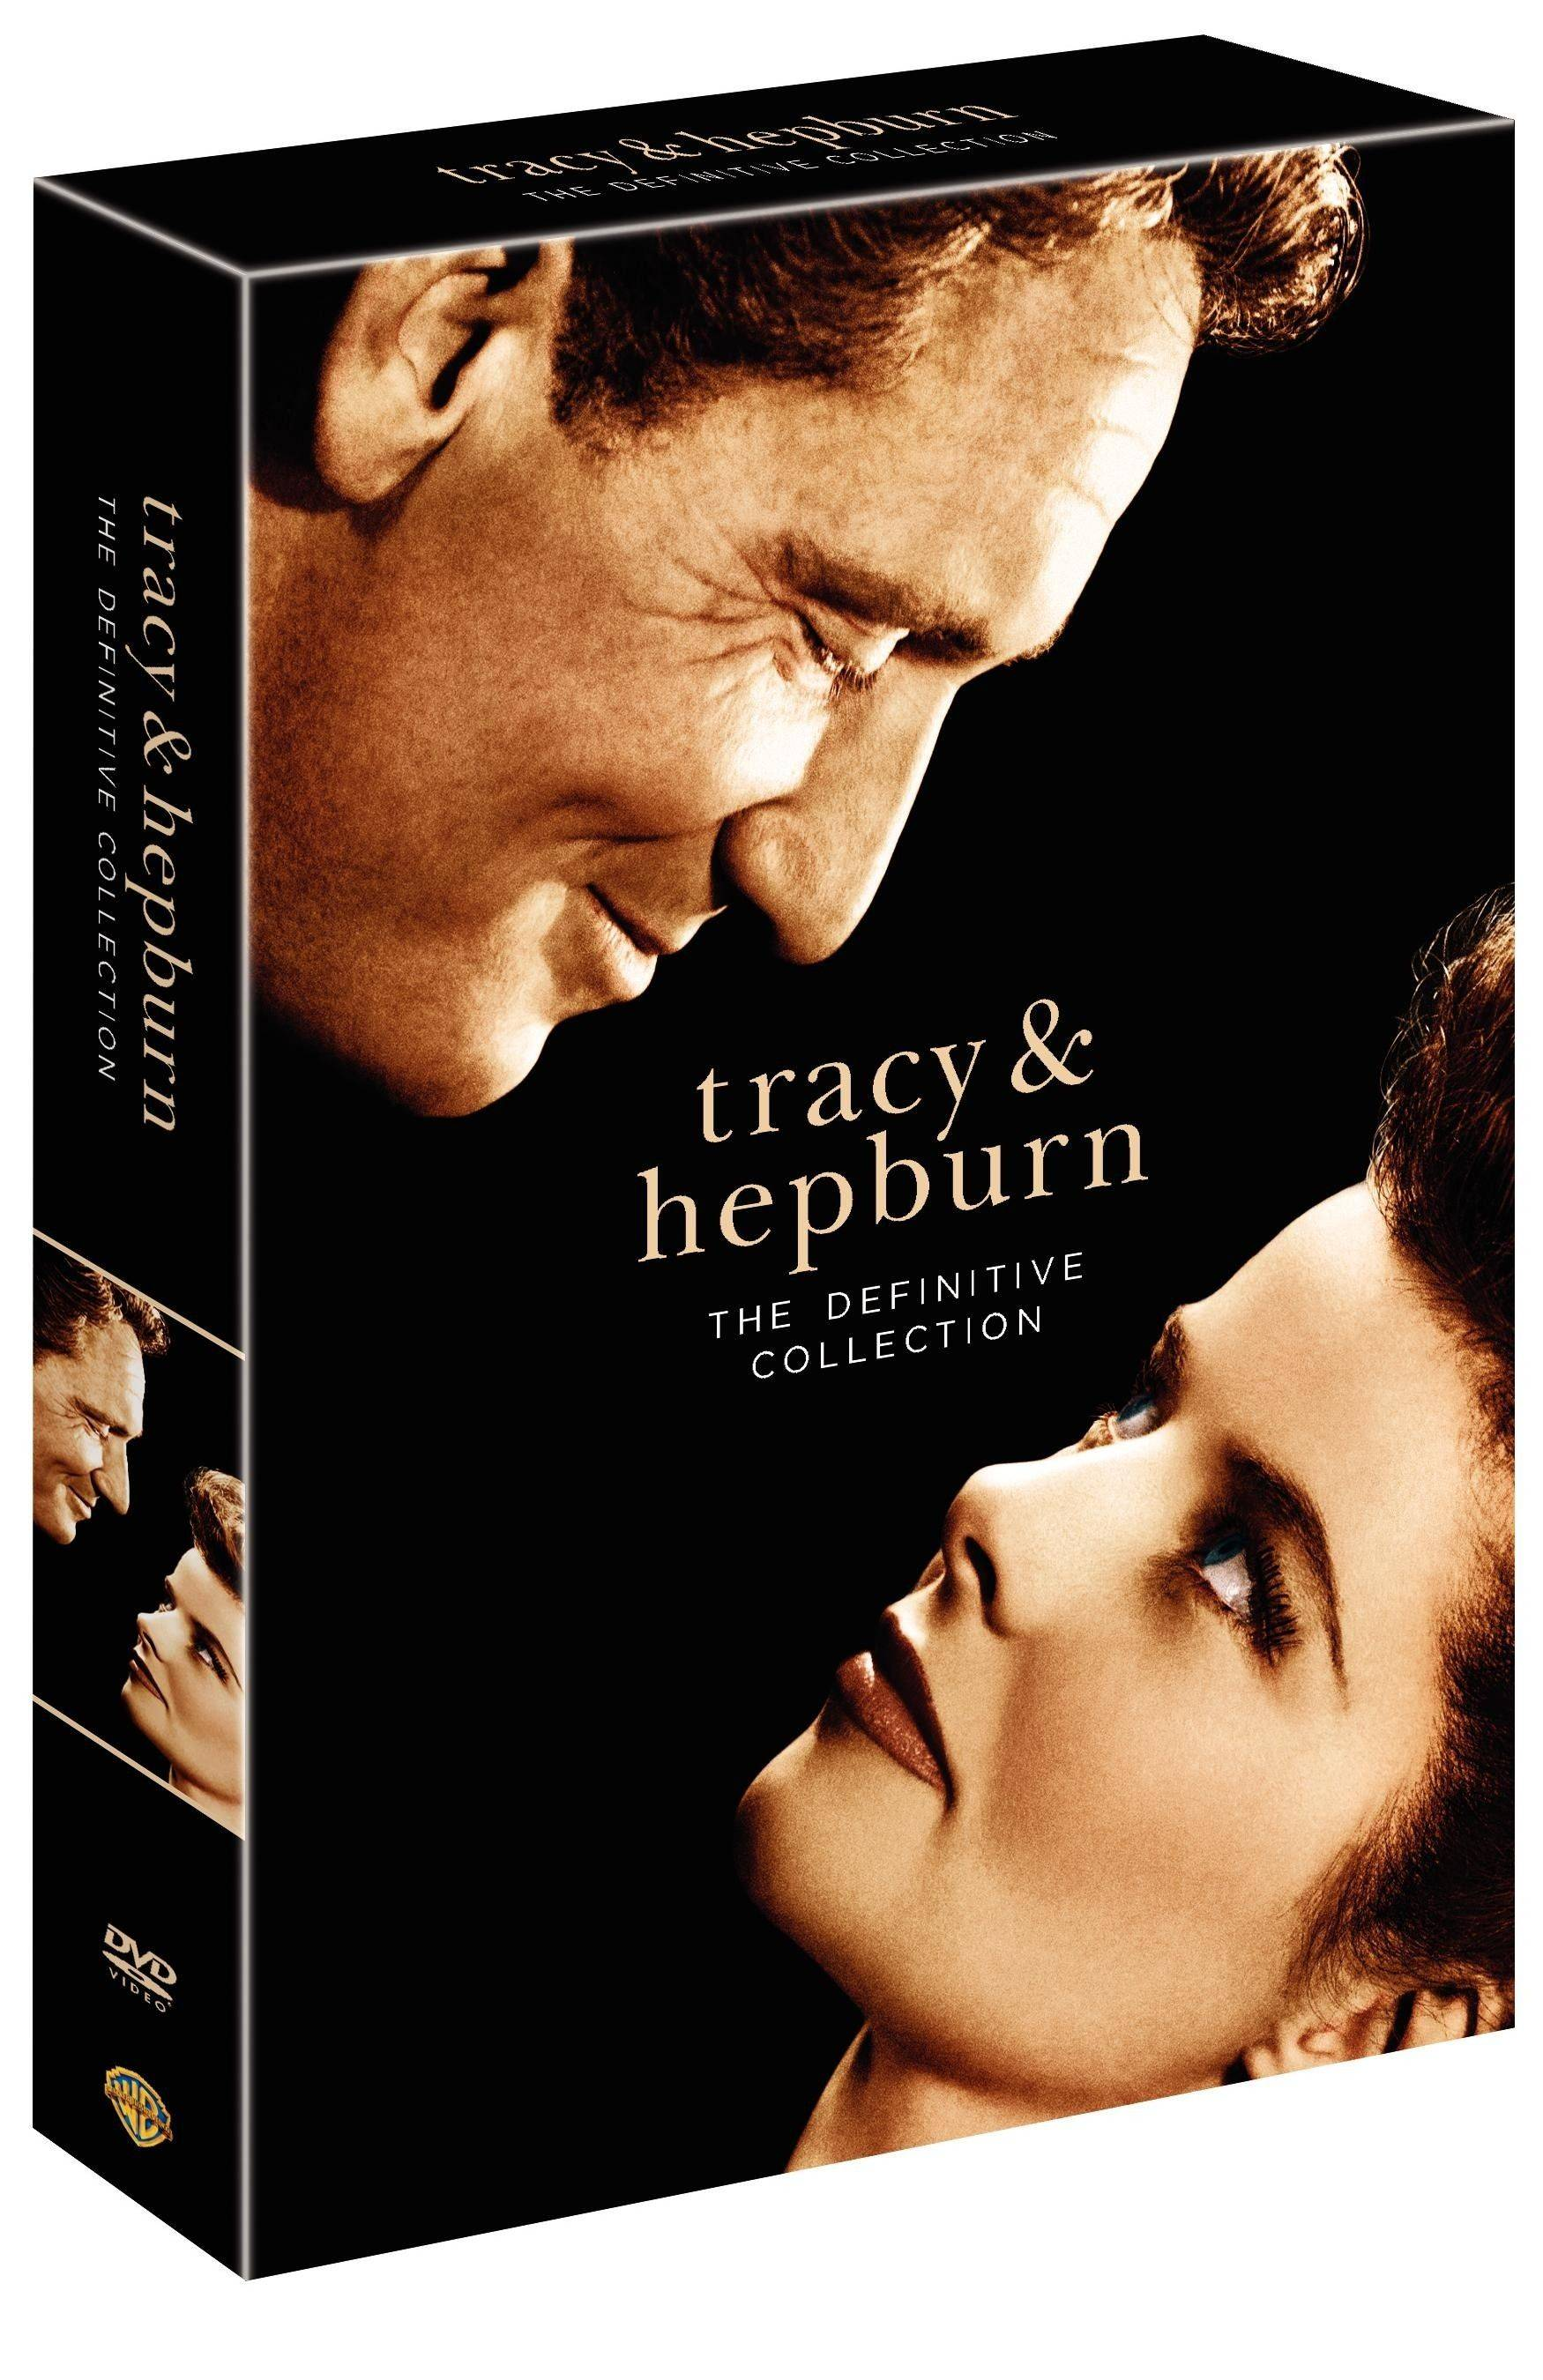 The films of Spencer Tracy and Katharine Hepburn have been released in a new DVD collection.